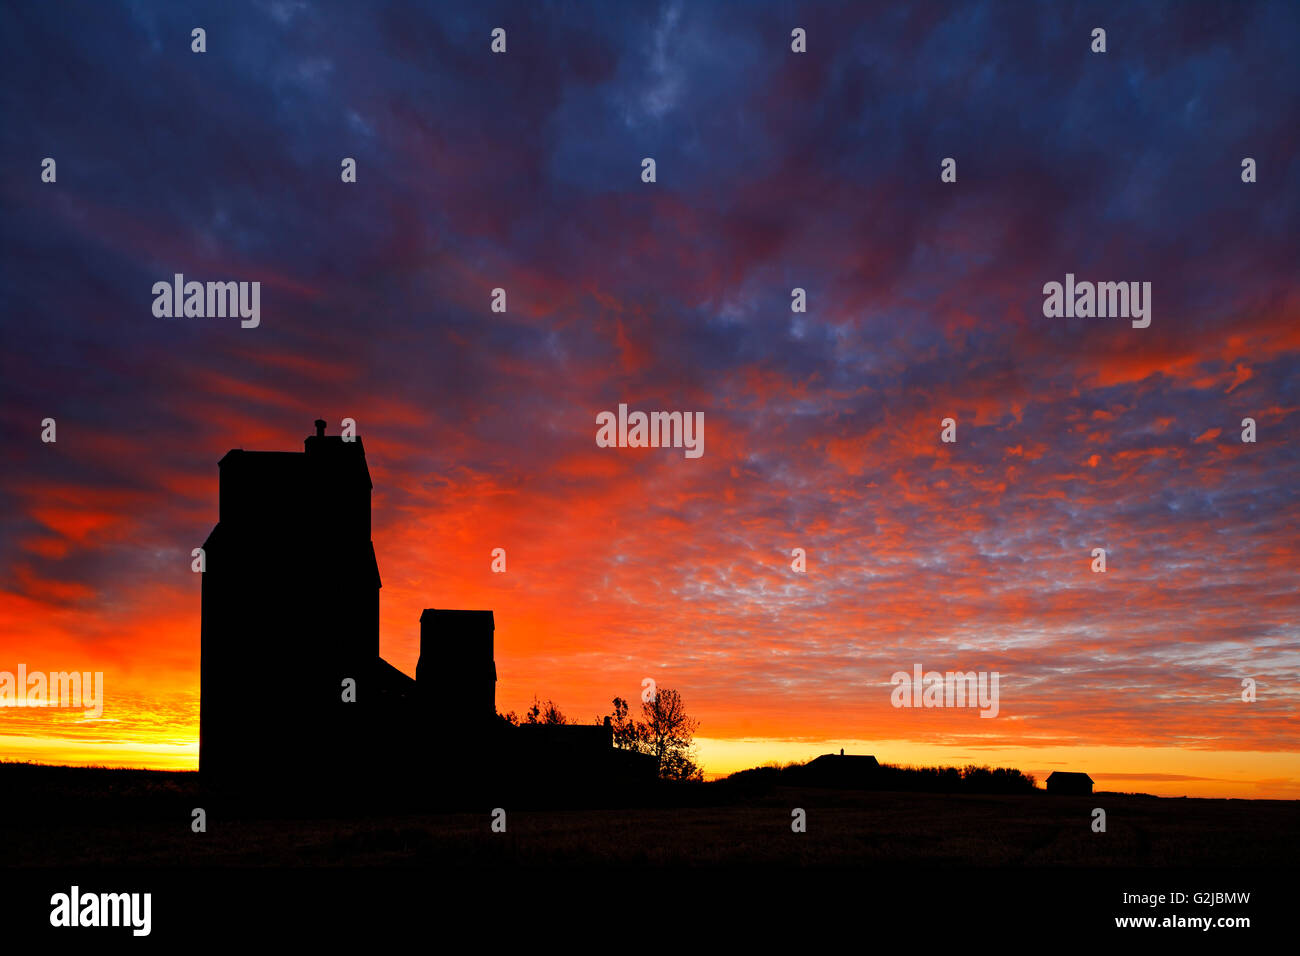 Grain elevators at sunrise in ghost town, Lepine, Saskatchewan, Canada - Stock Image